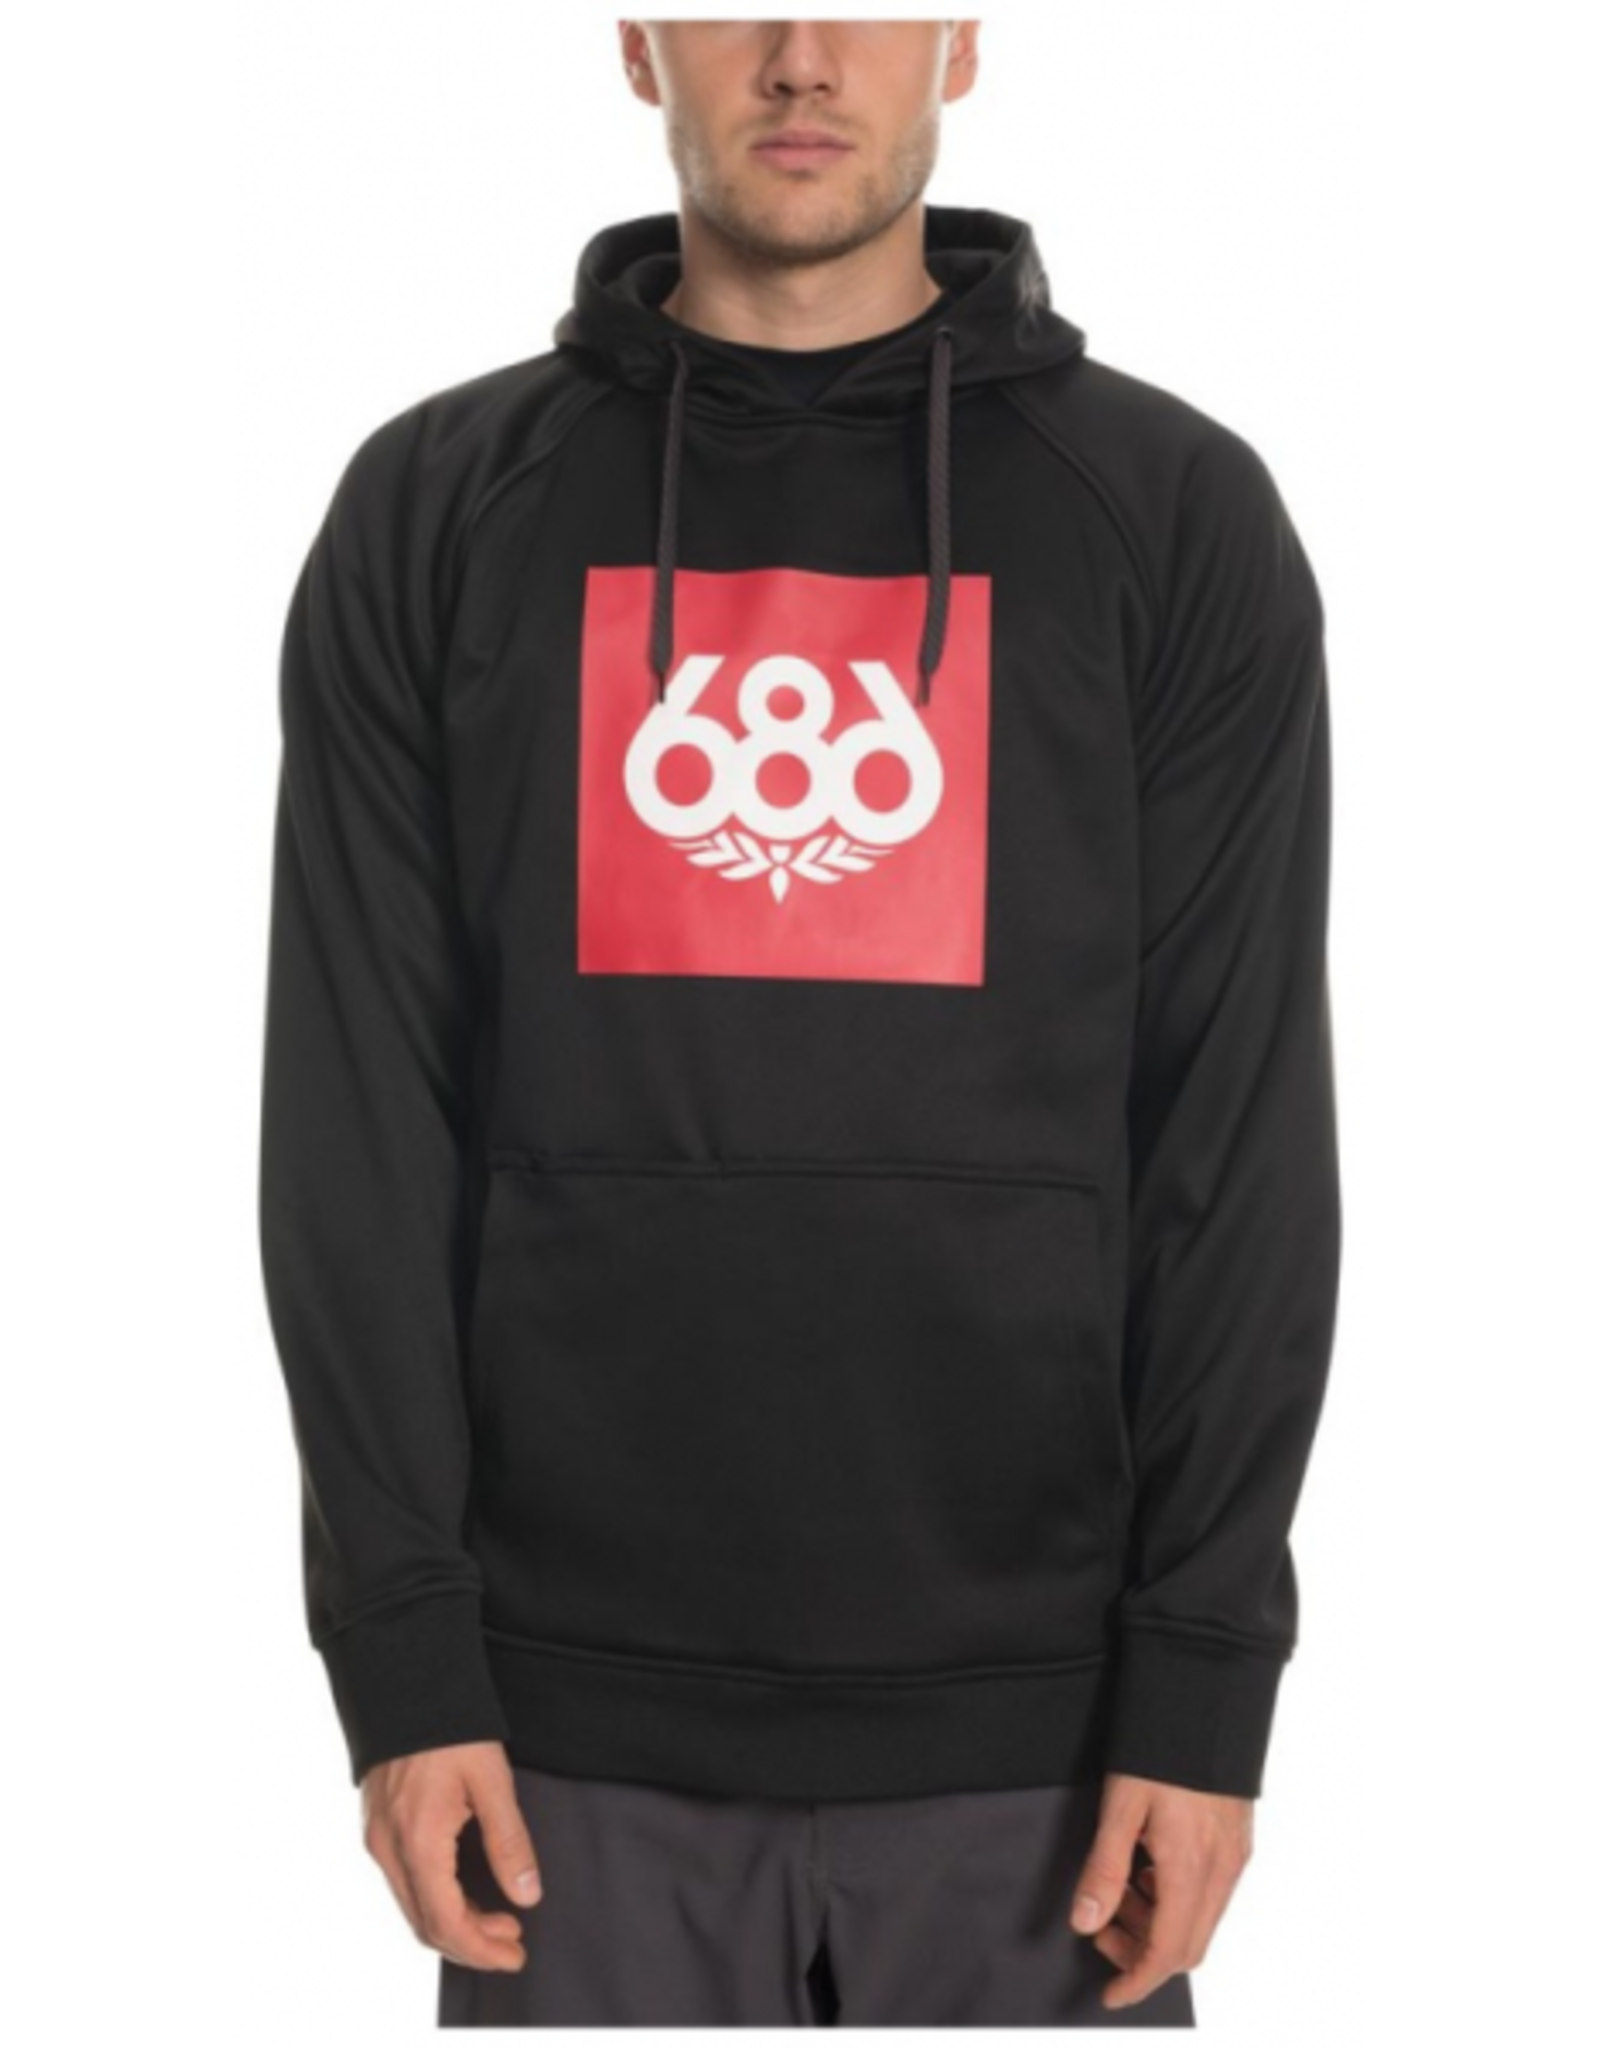 686 686 Knockout Bonded  Fleece Pullover Hoody Black Size Small